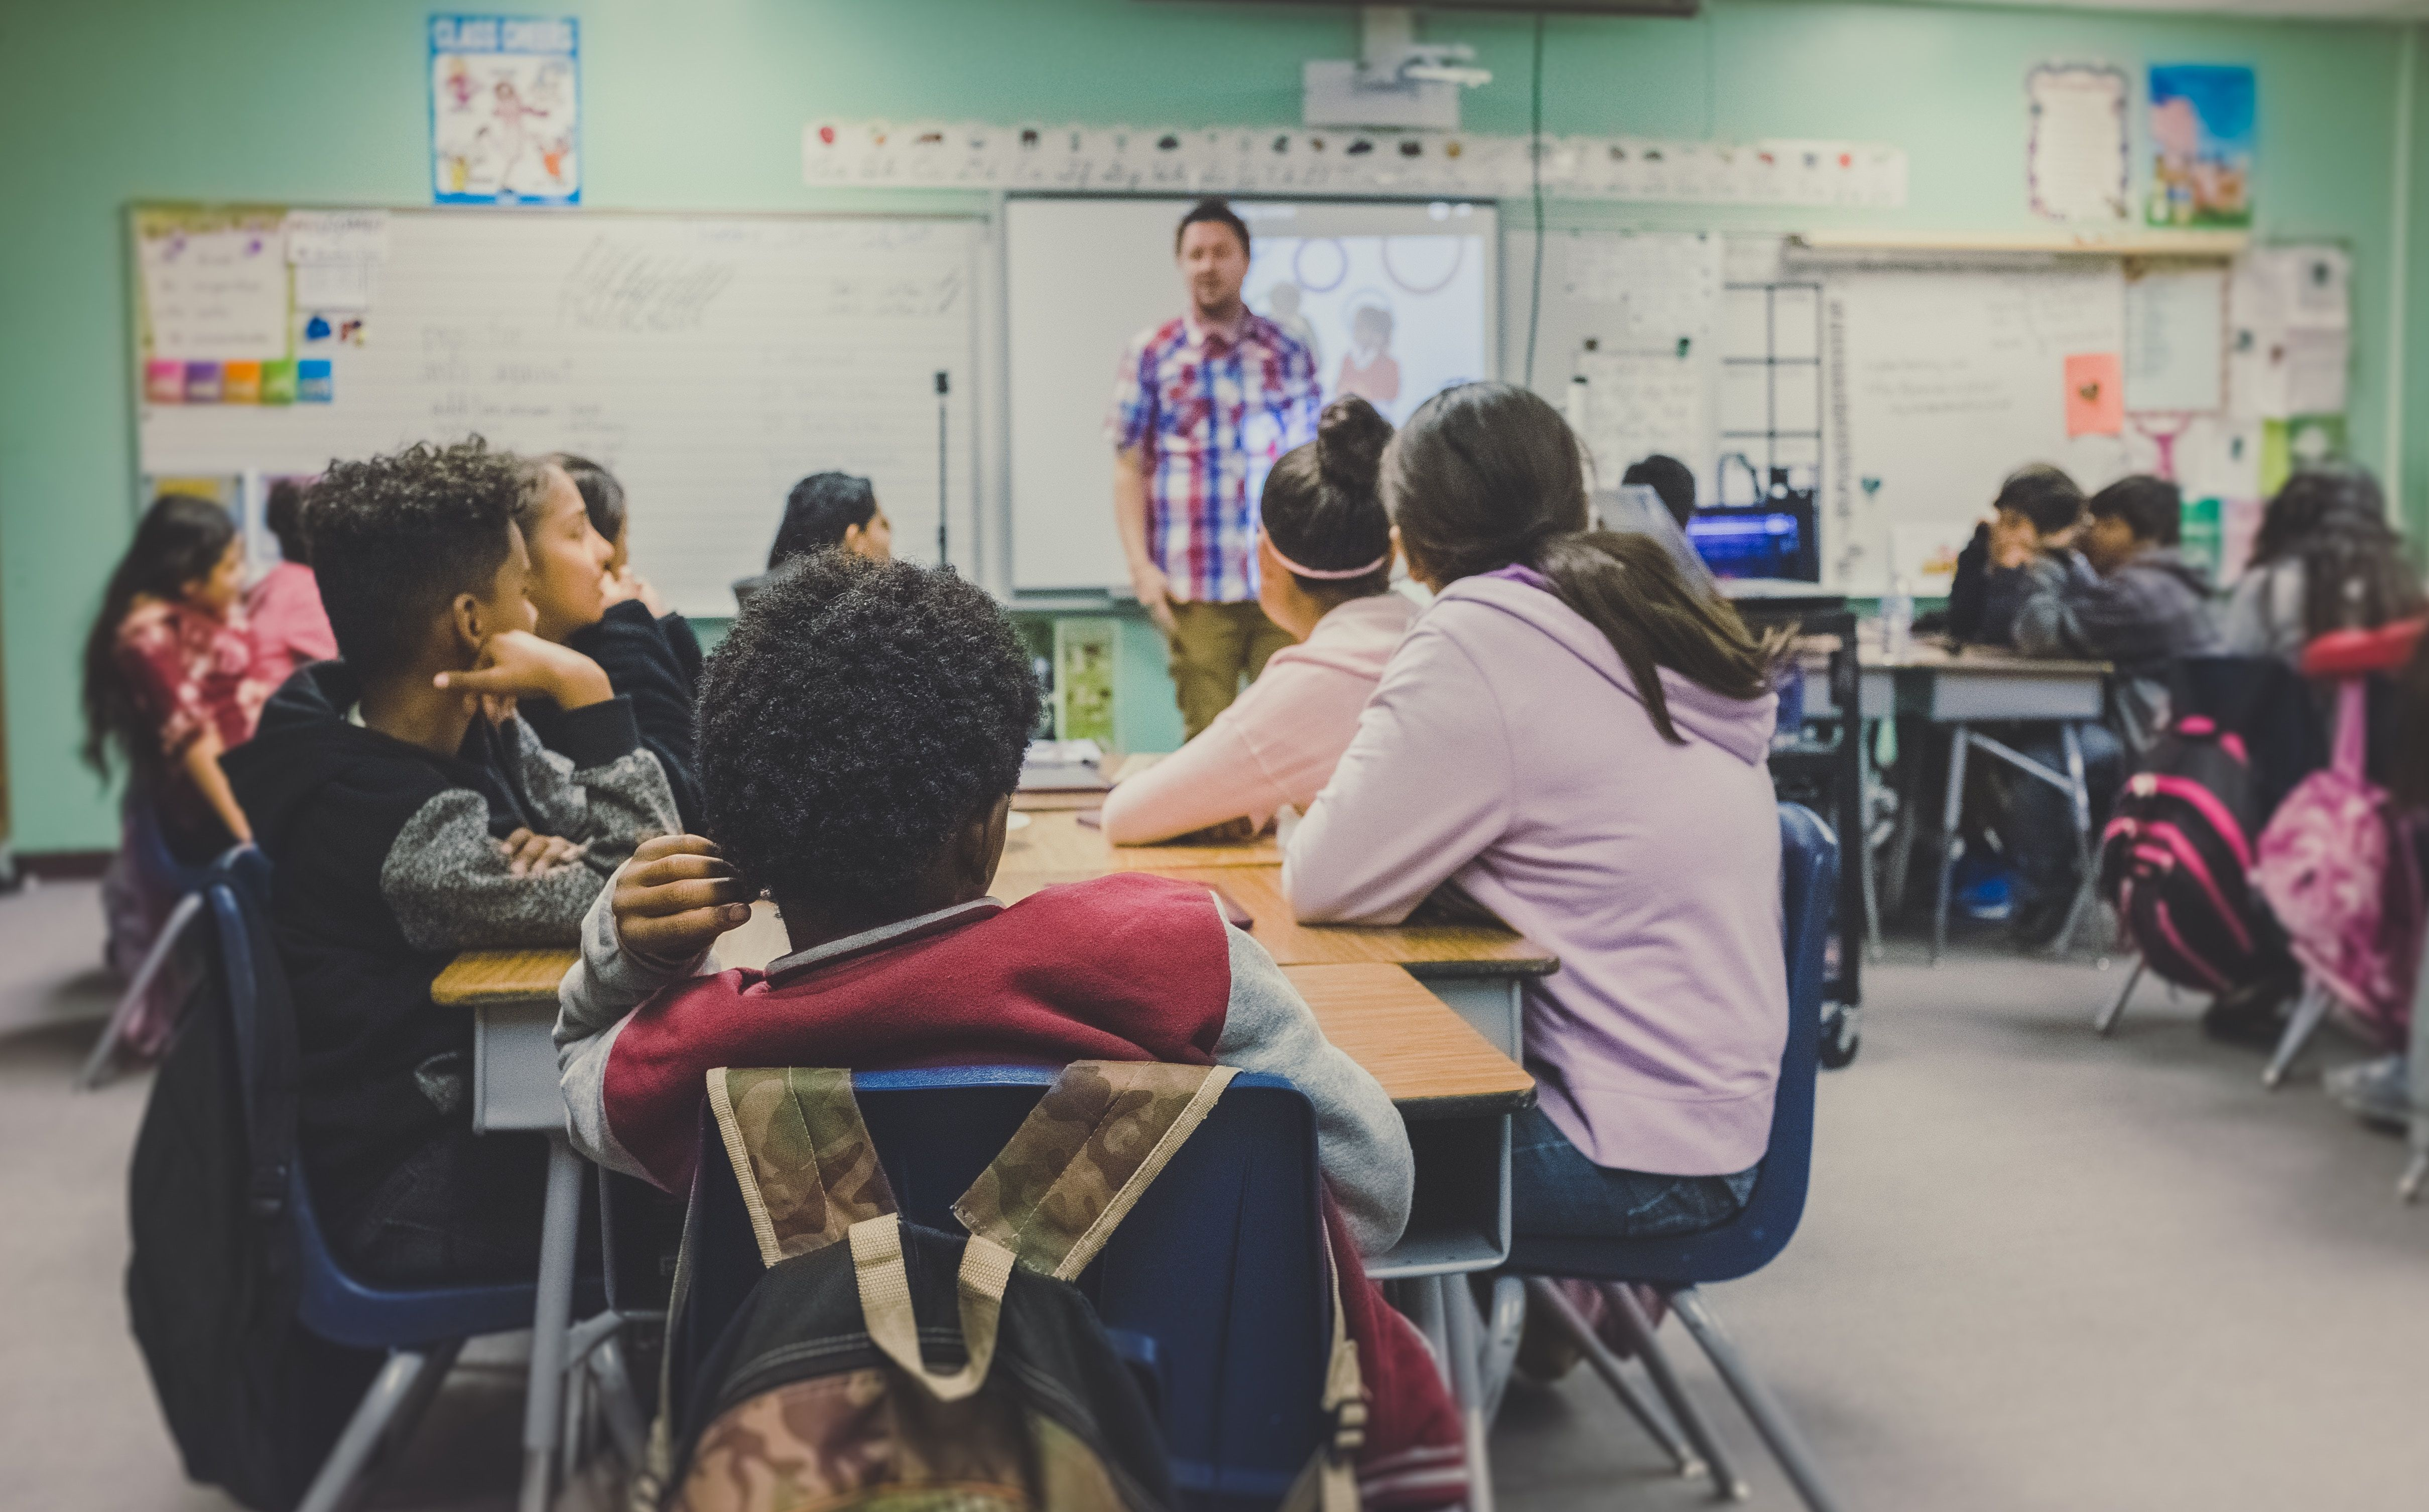 The key to breaking cycle of poverty in Israel lies in education